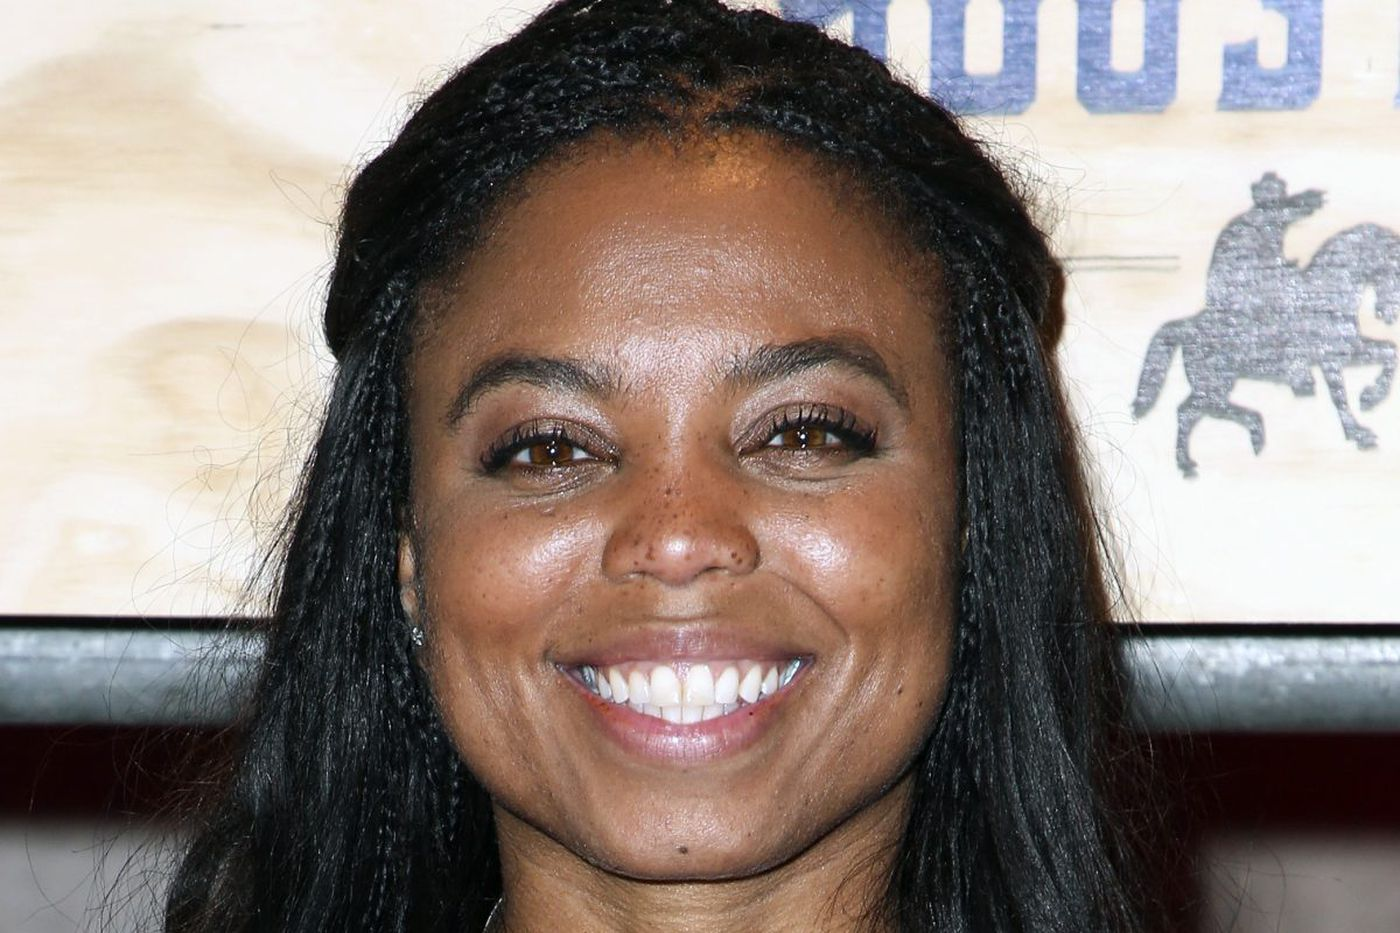 ESPN wanted to suspend Jemele Hill, but her colleagues had her back